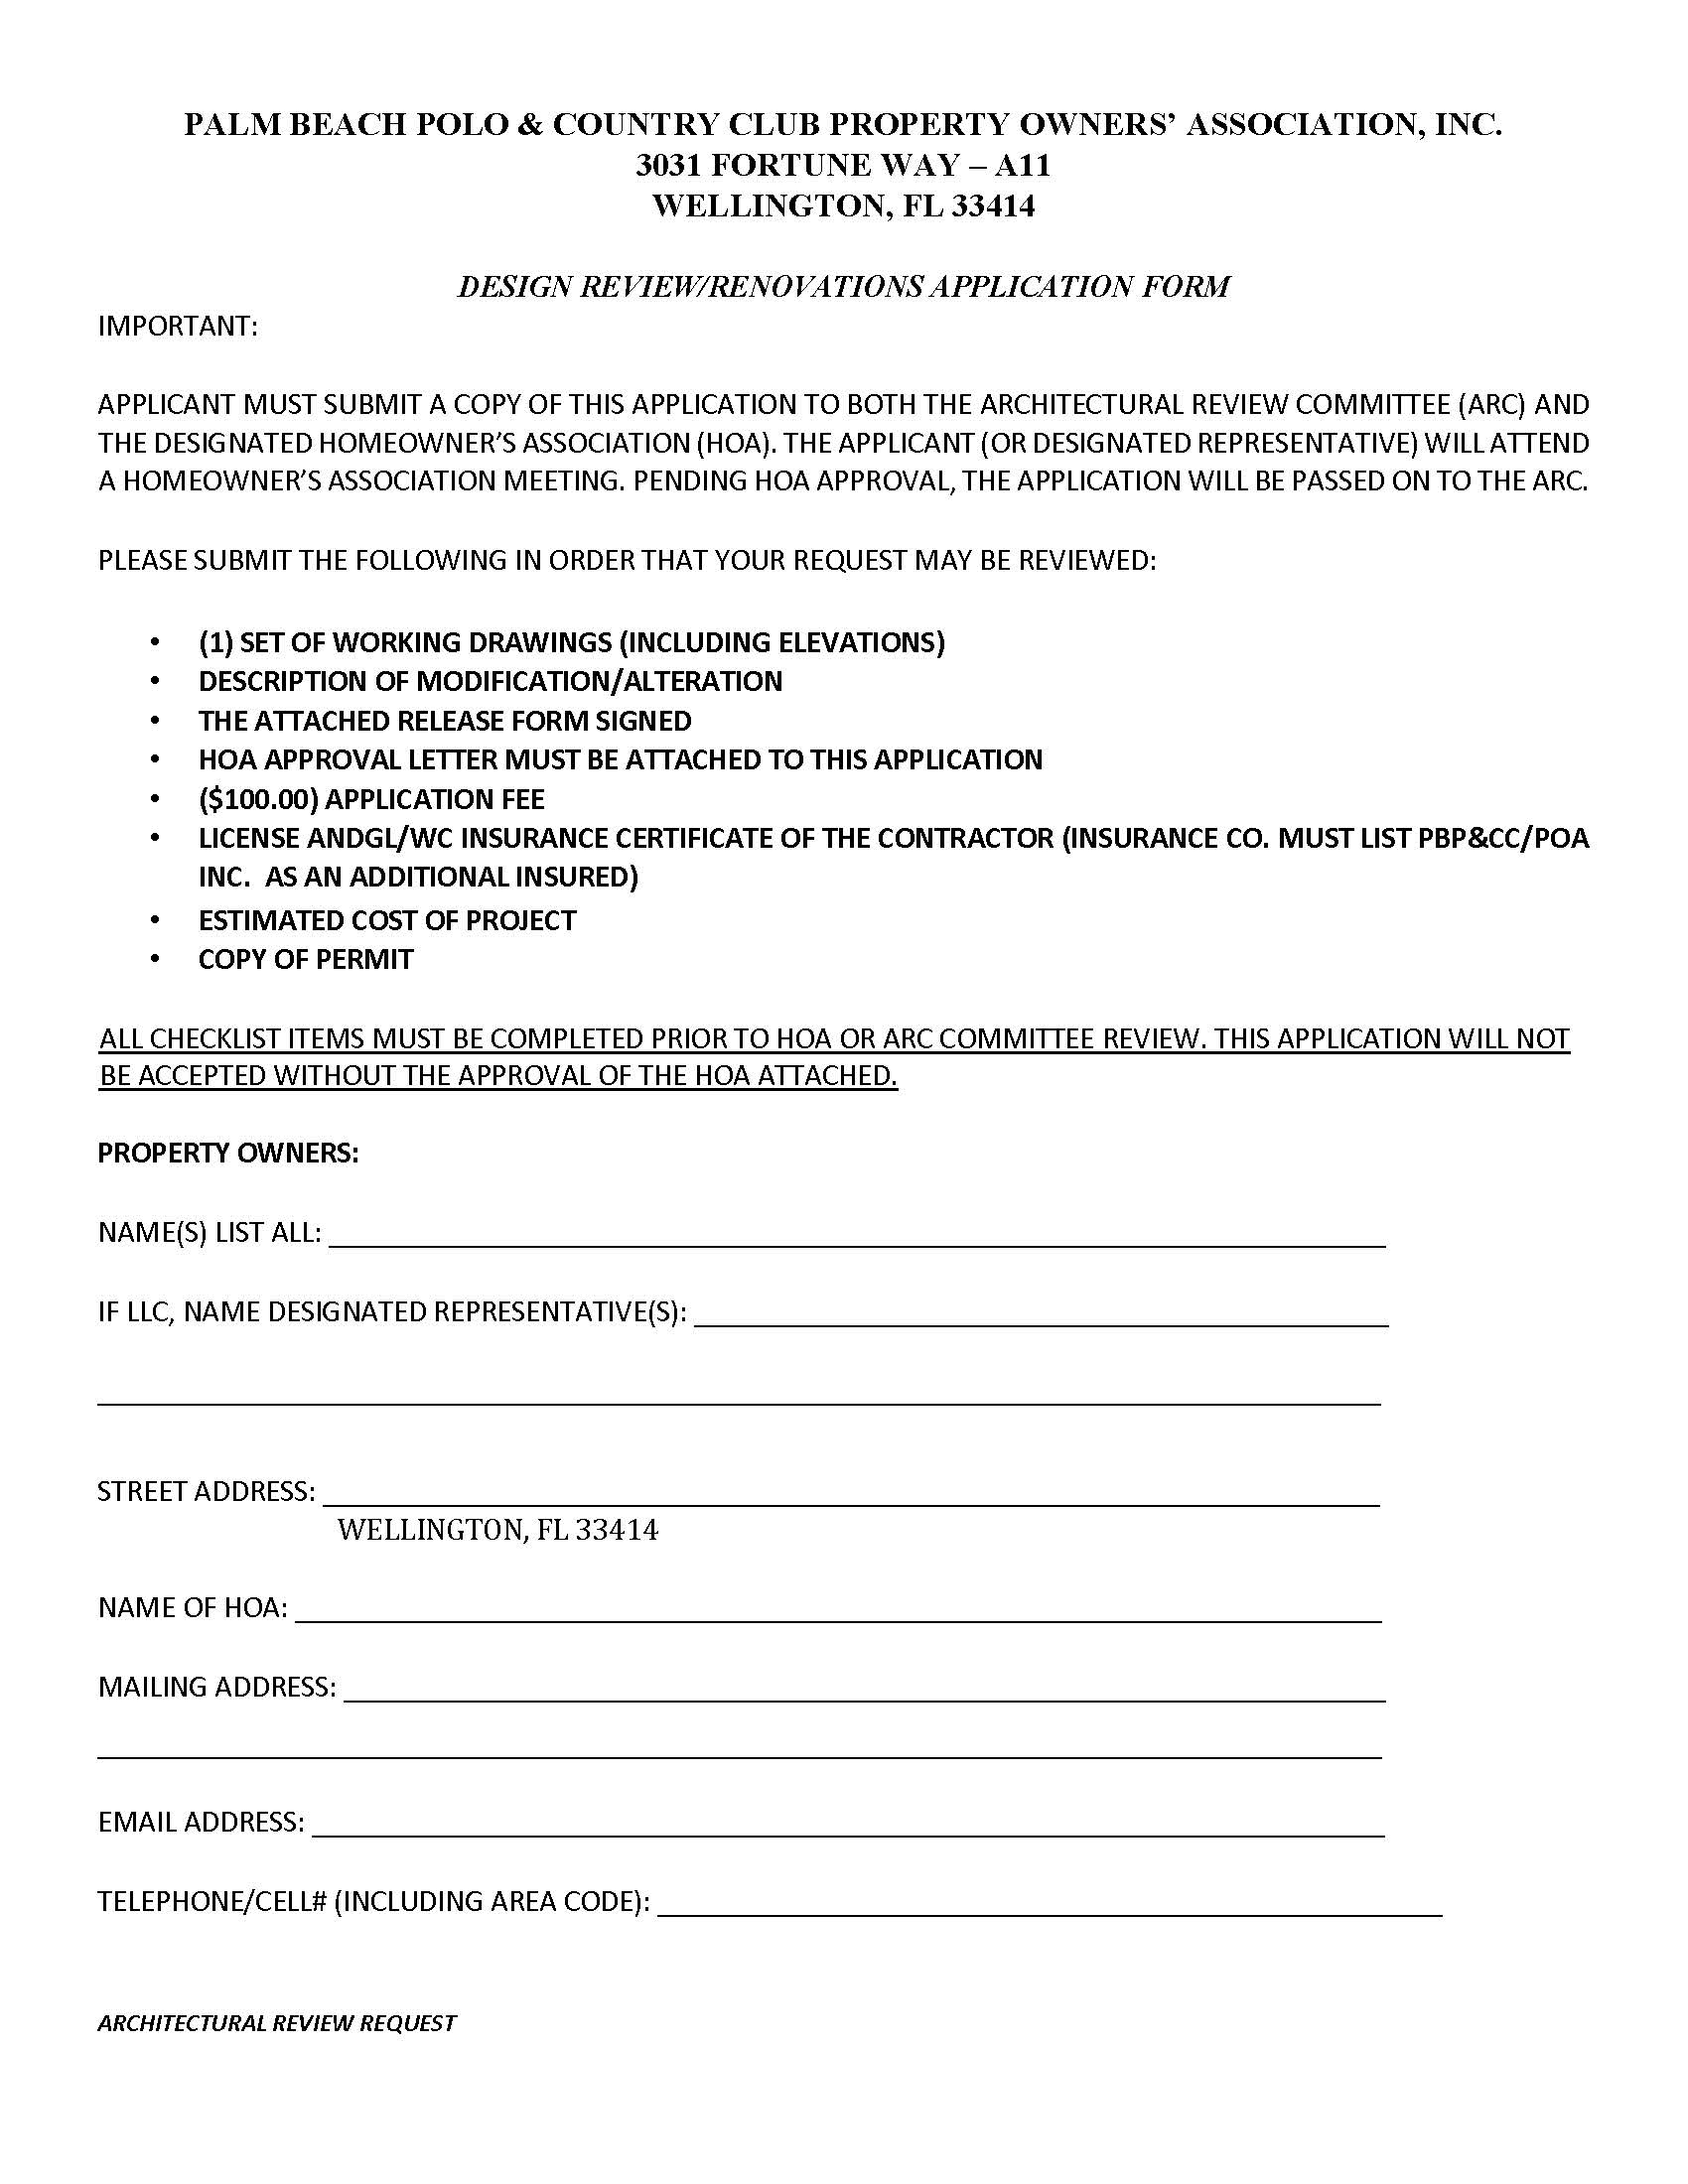 arc renovation form to view the able pdf version please click here